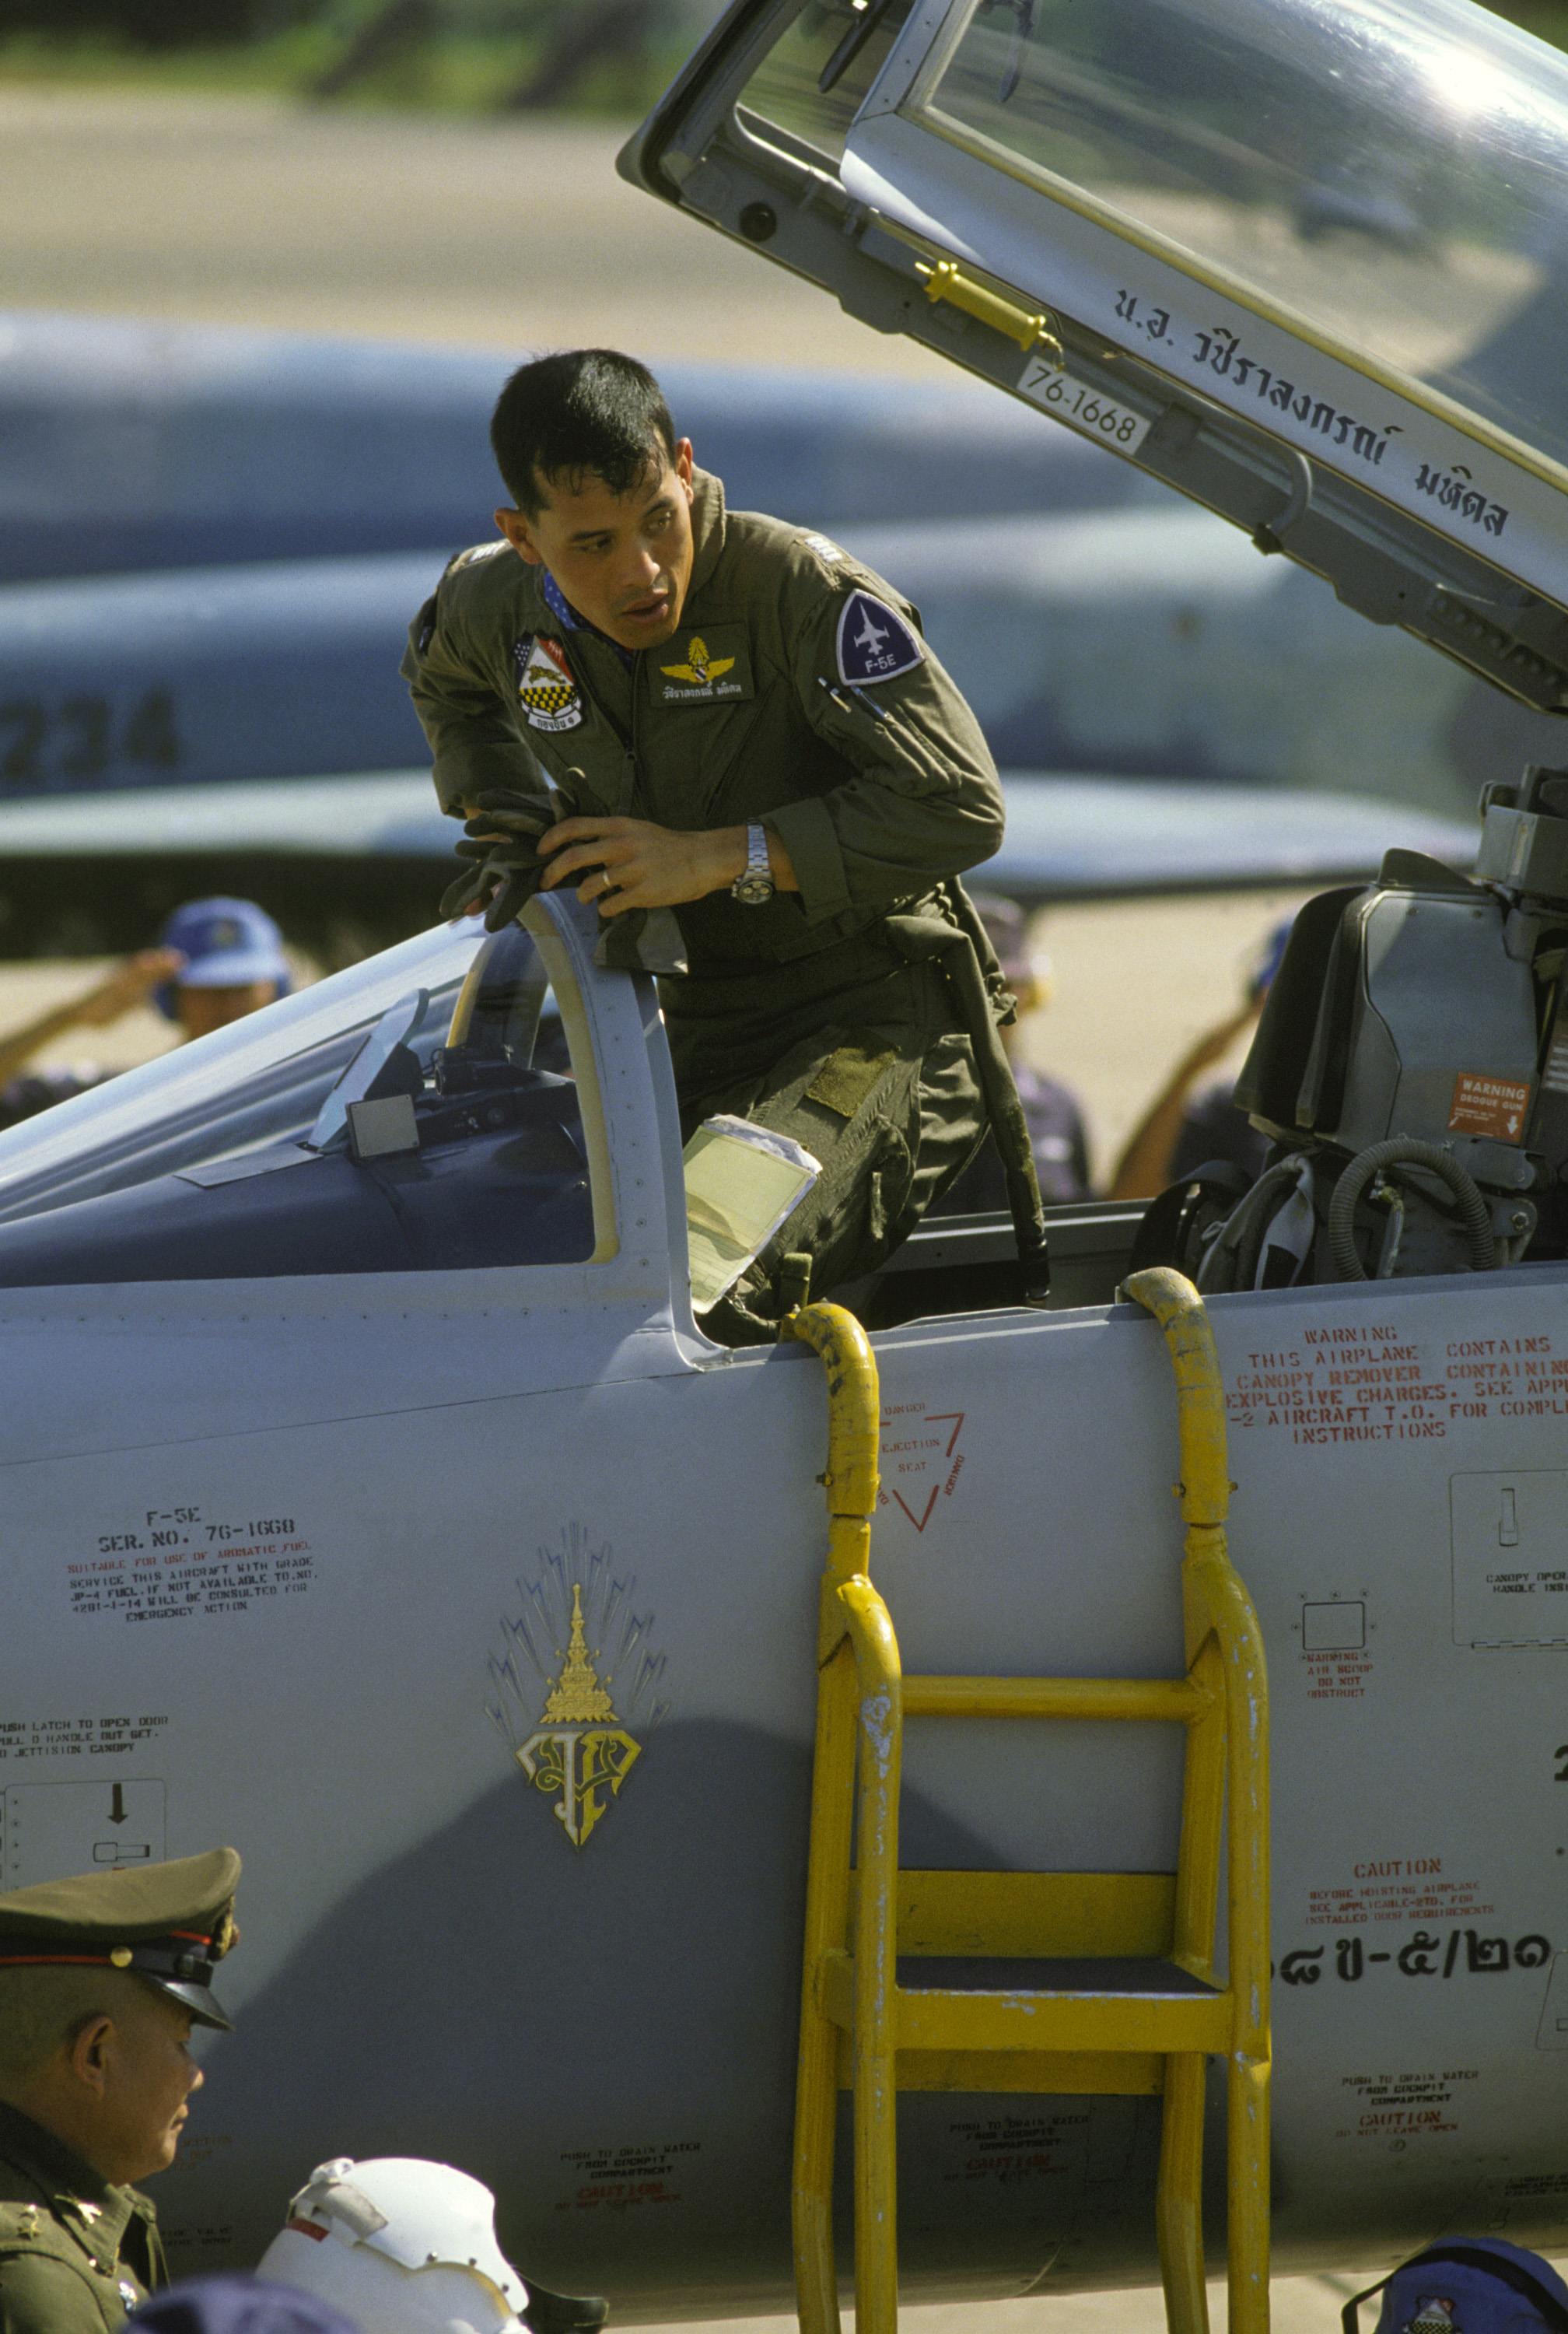 His Royal Highness Vajiralongkorn of Thailand climbs out of the cockpit of an F-5E Tiger II aircraft upon his arrival at the base during COMMANDO WEST IX, a joint US and Thailand training exercise. Photo taken on October 15, 1985.